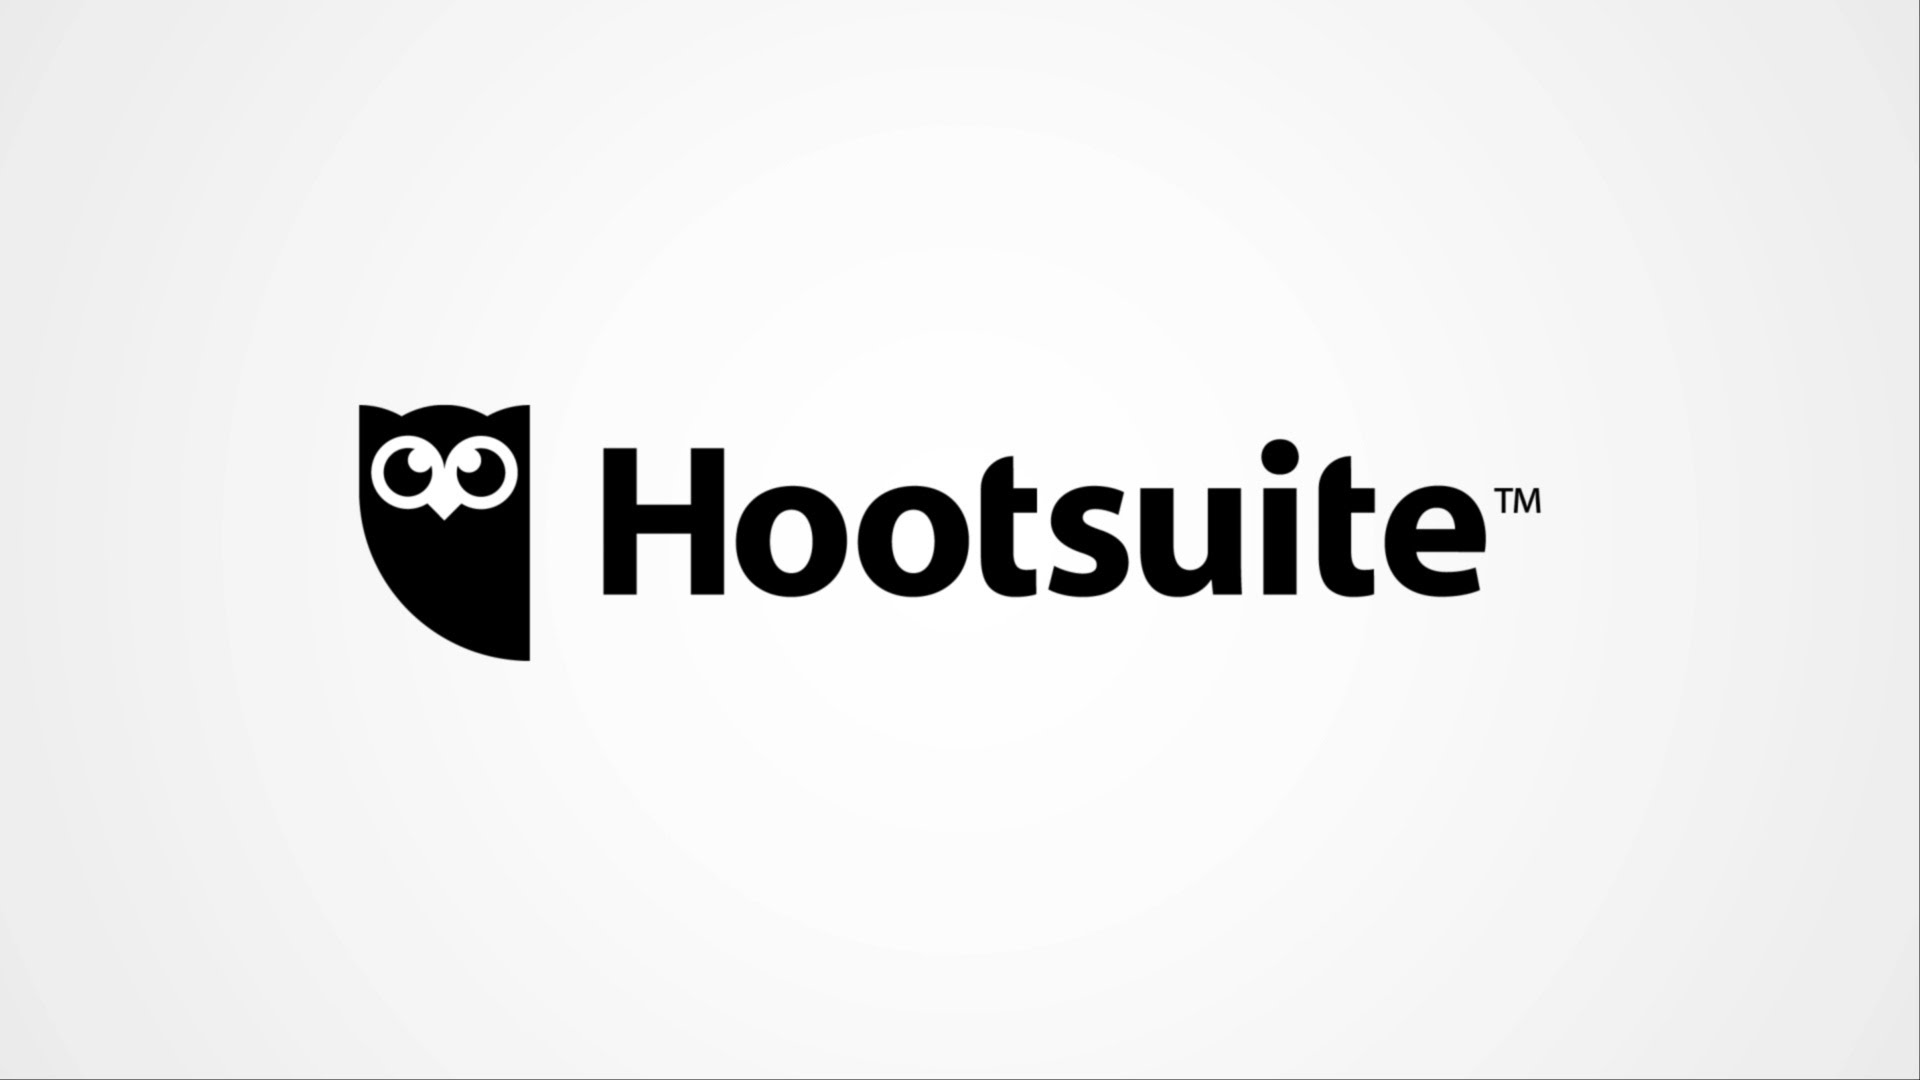 On a buying spree, Hootsuite adds analytics provider LiftMetrix